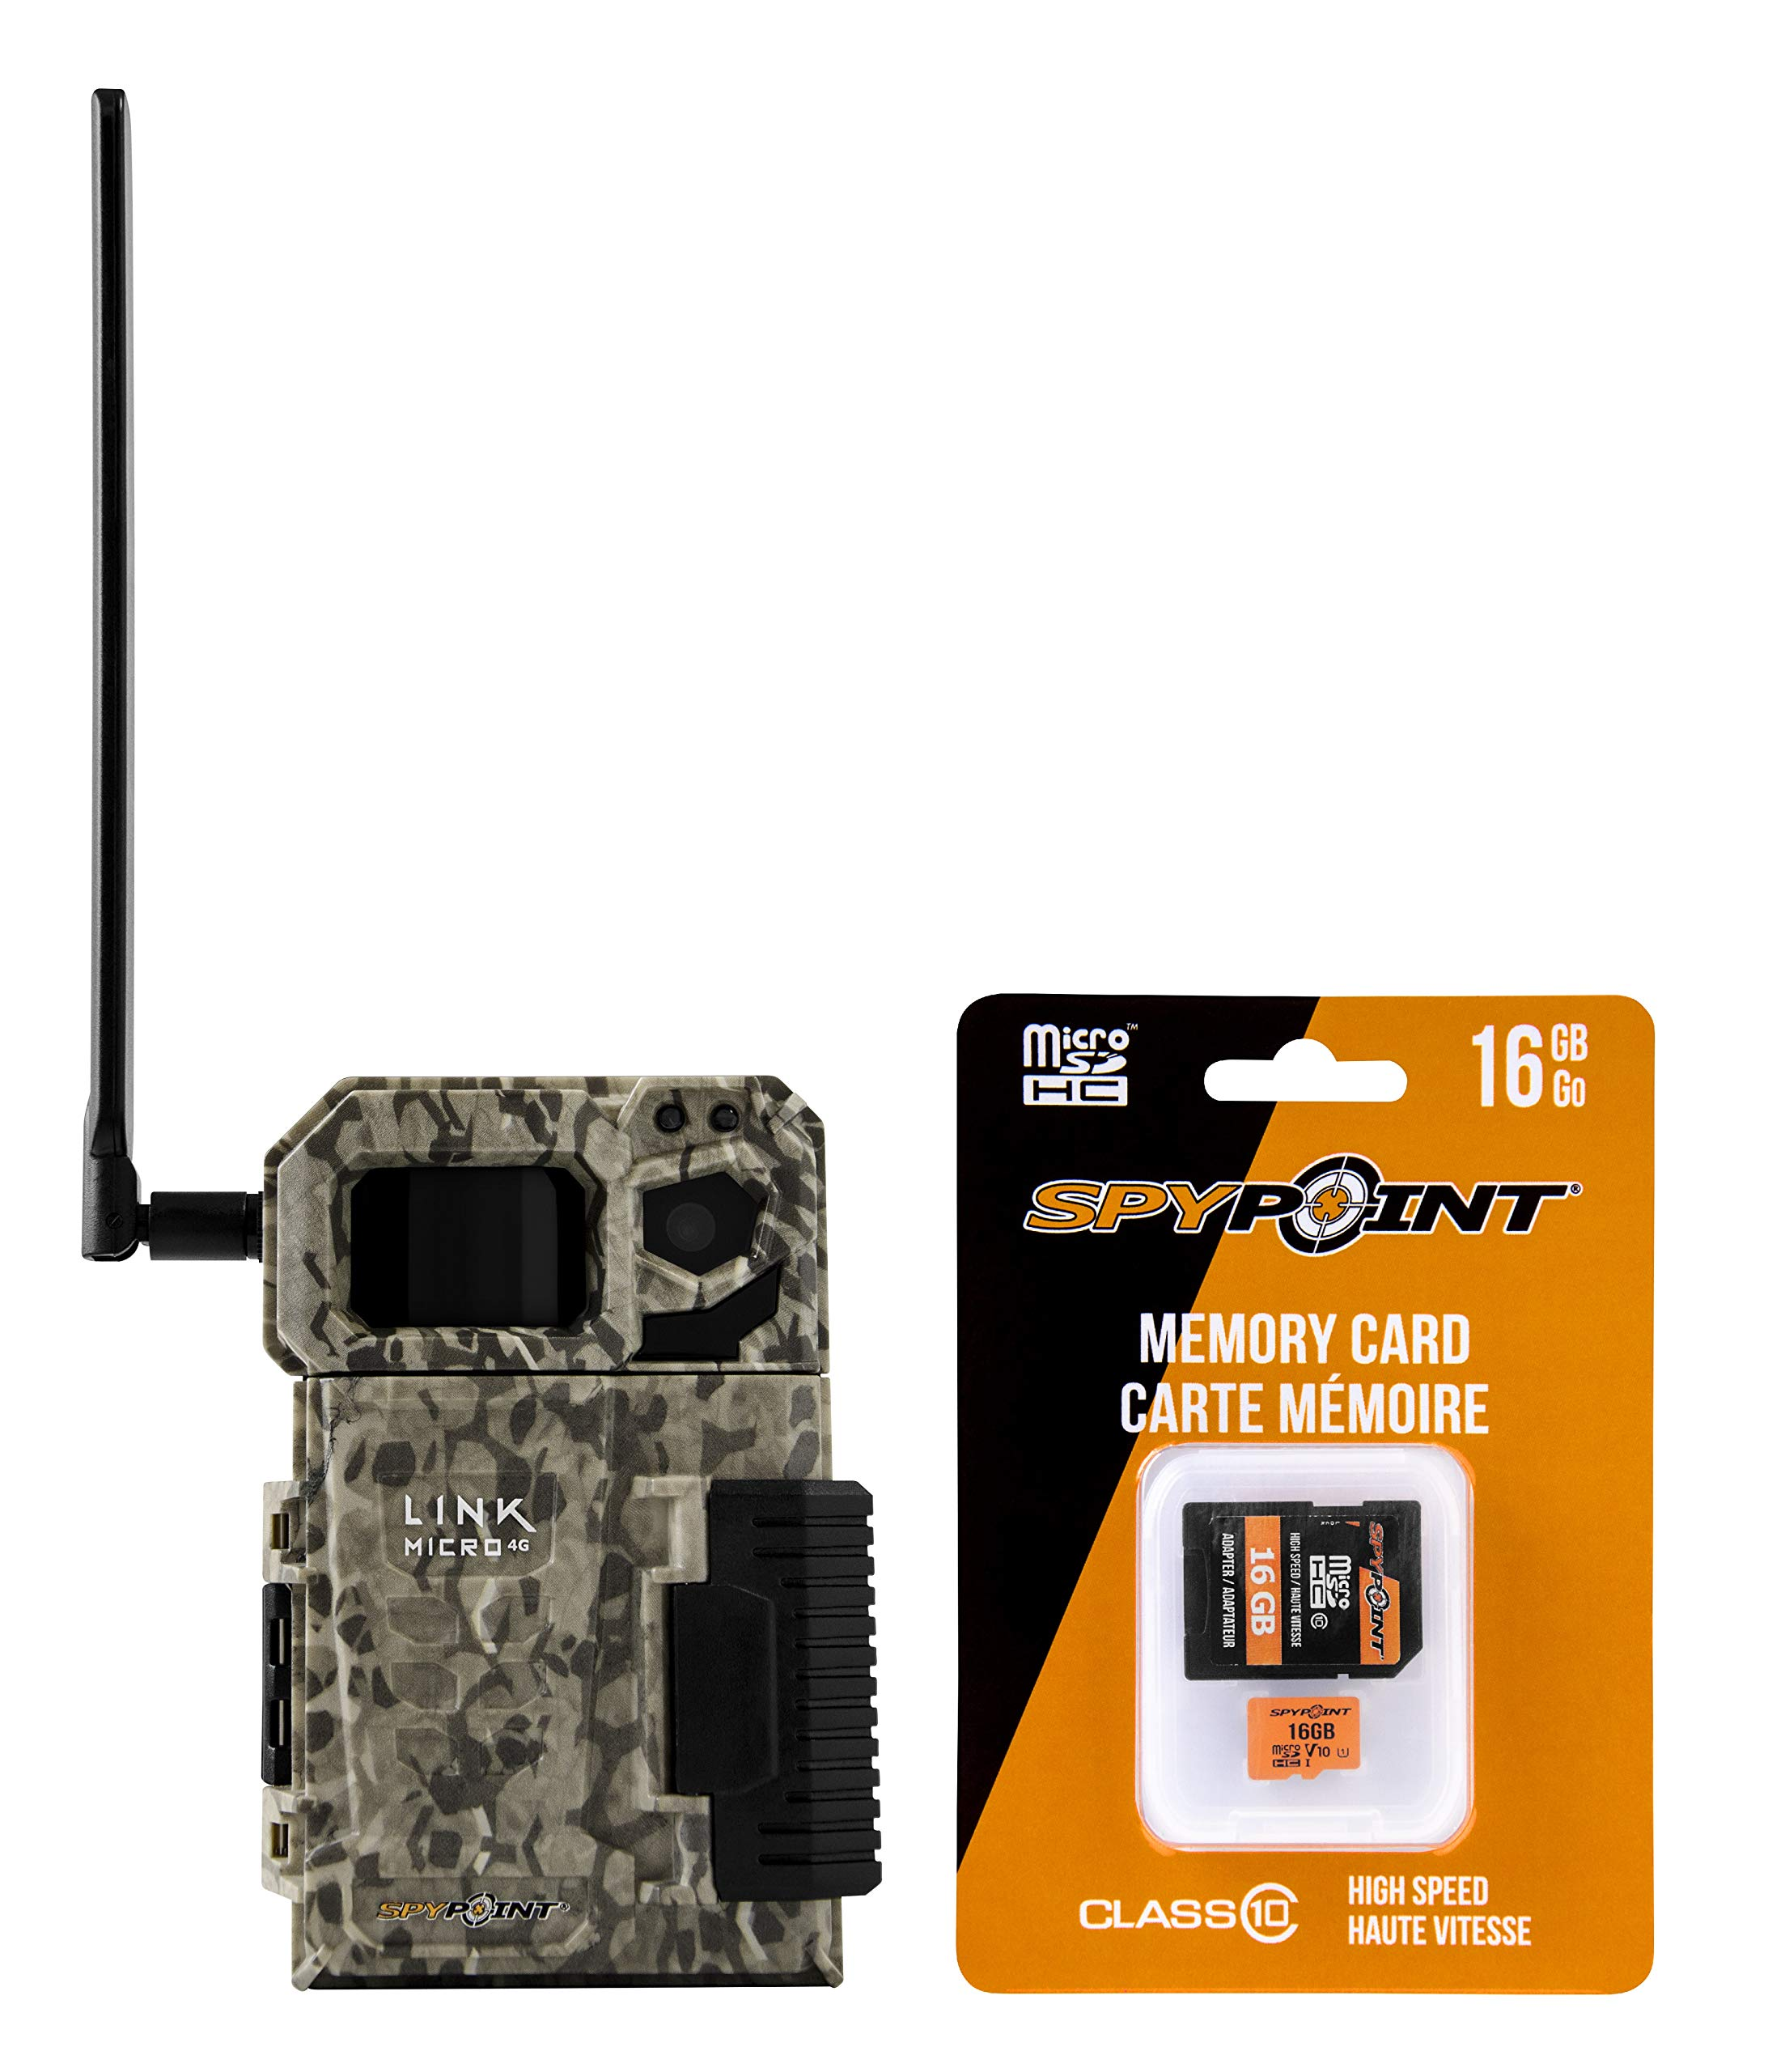 SPYPOINT LINK MICRO with 16GB MicroSD (Smallest on The Market!) Wireless/Cell Trail Camera, 4 Power LEDs, Fast 4G Photo Transmission w/Preactivated SIM, Fully Configurable via App (Nationwide Version)